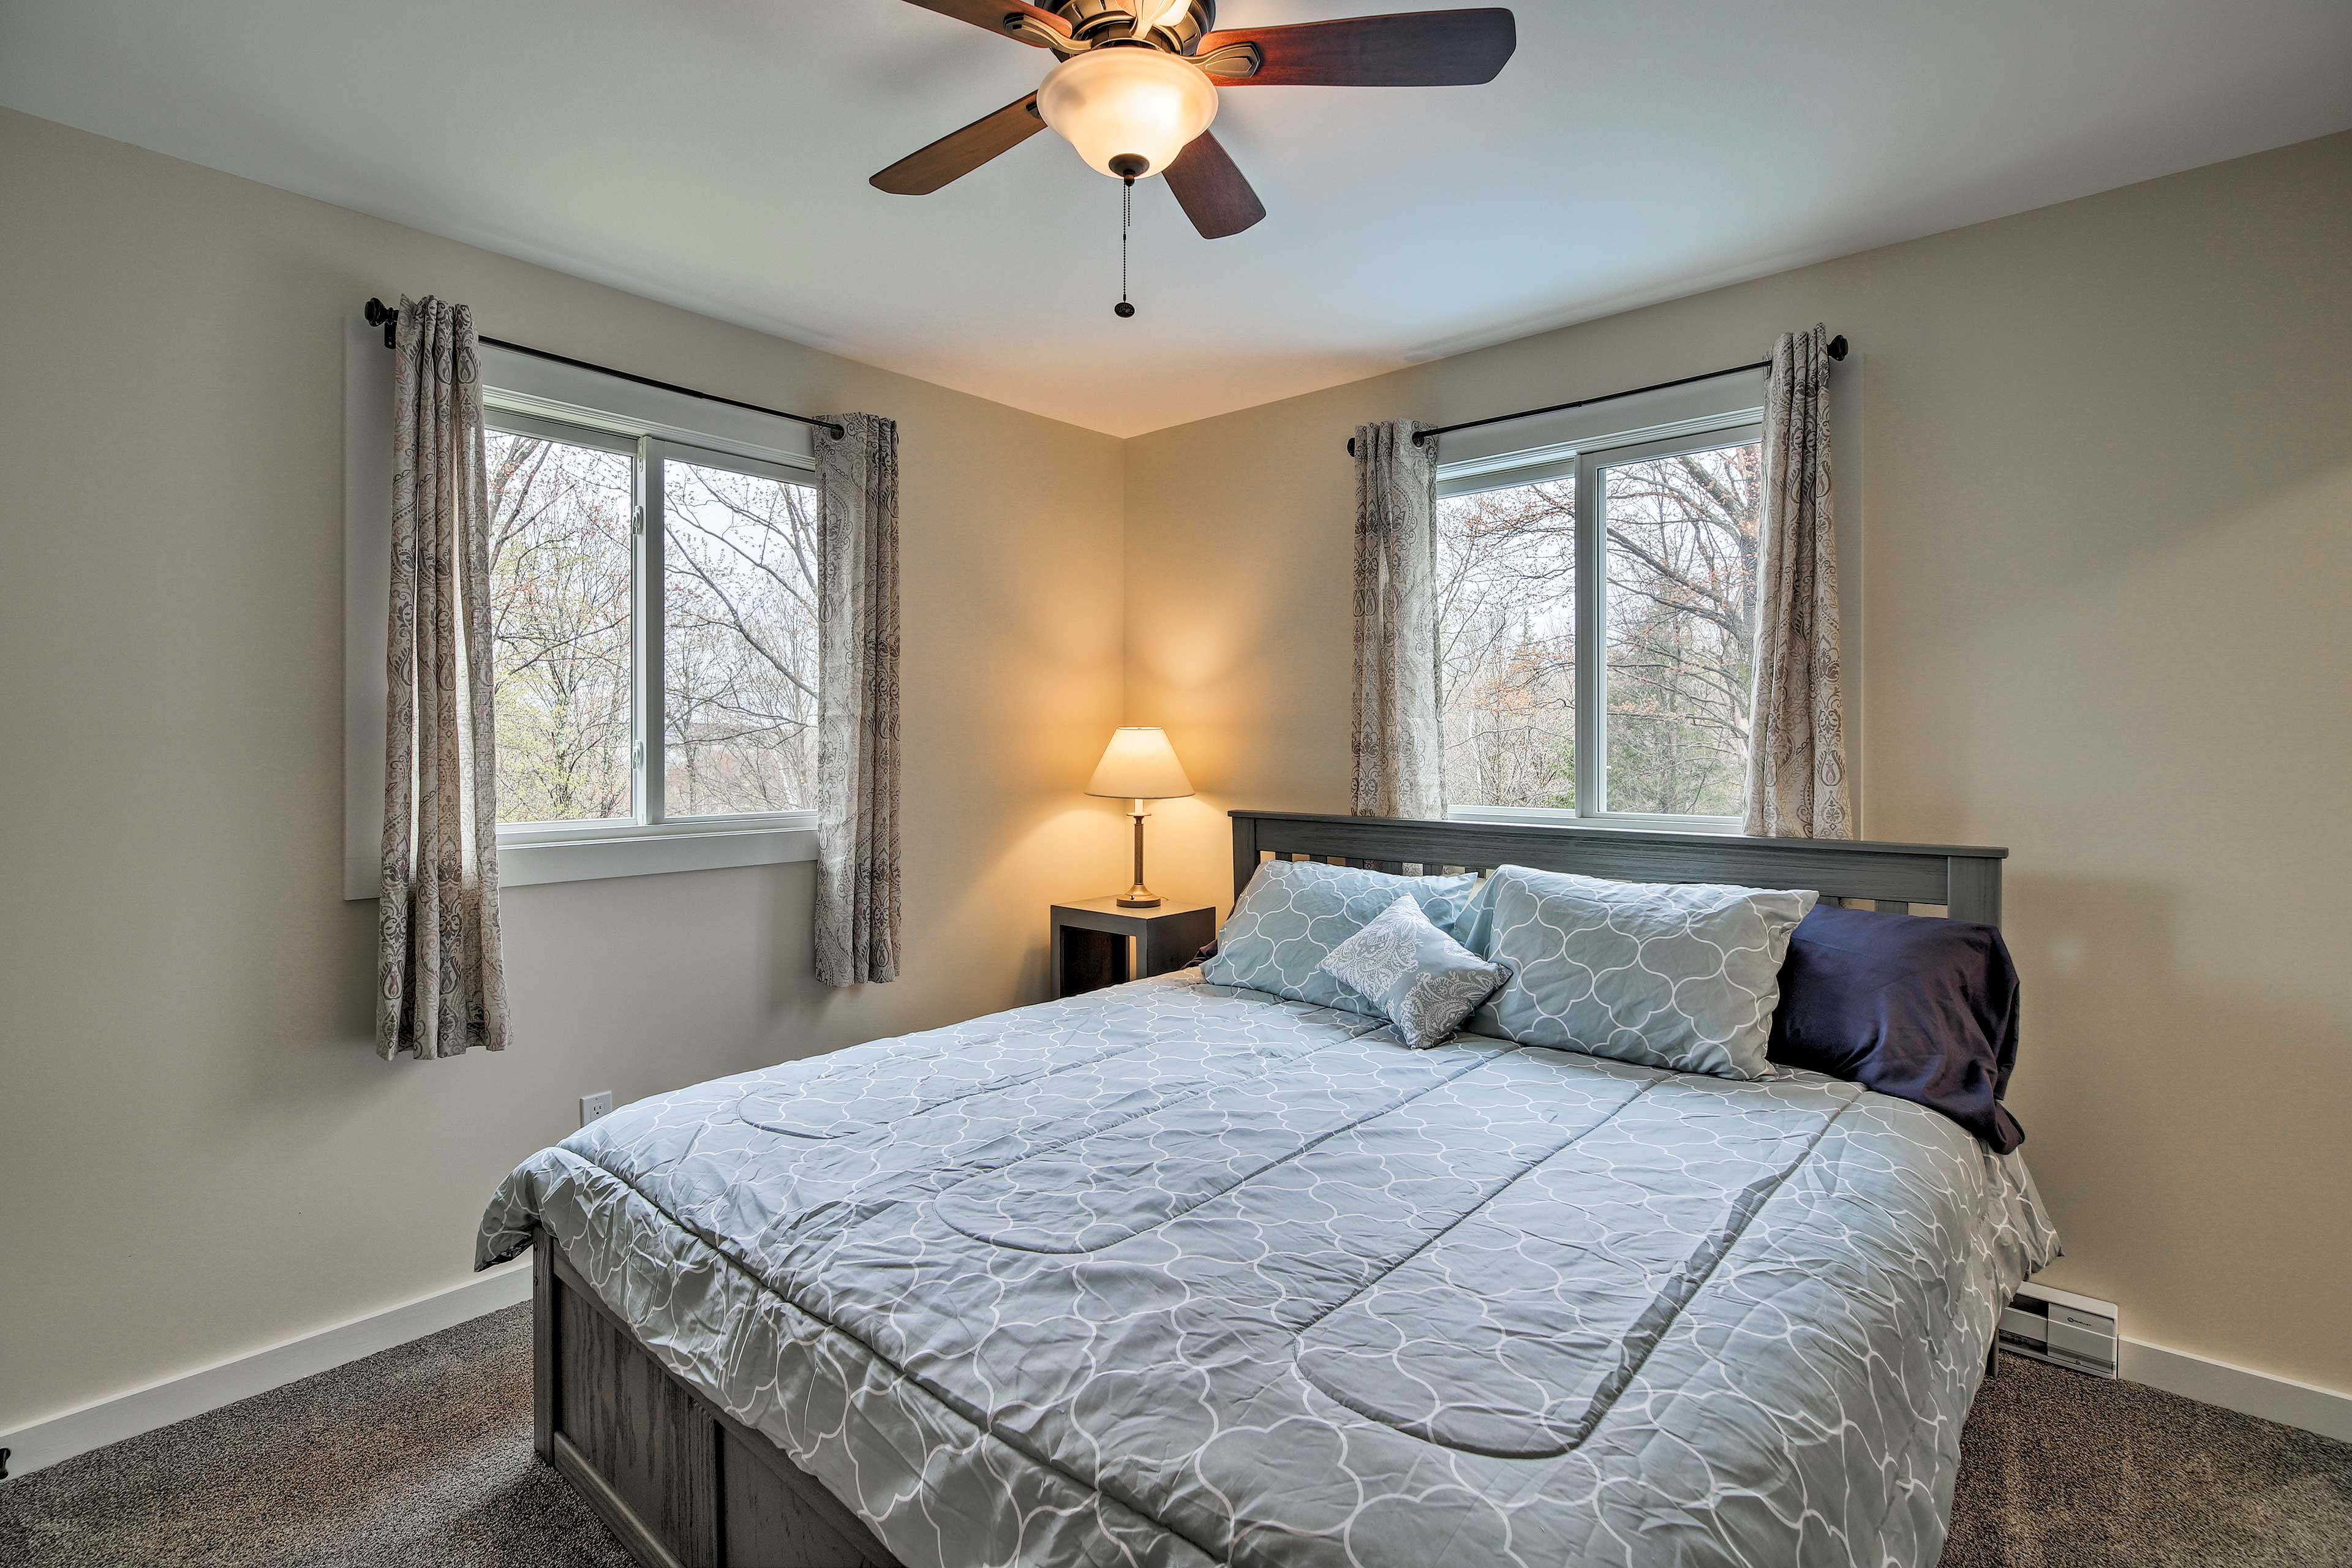 Choose from 3 bedrooms to sleep in.